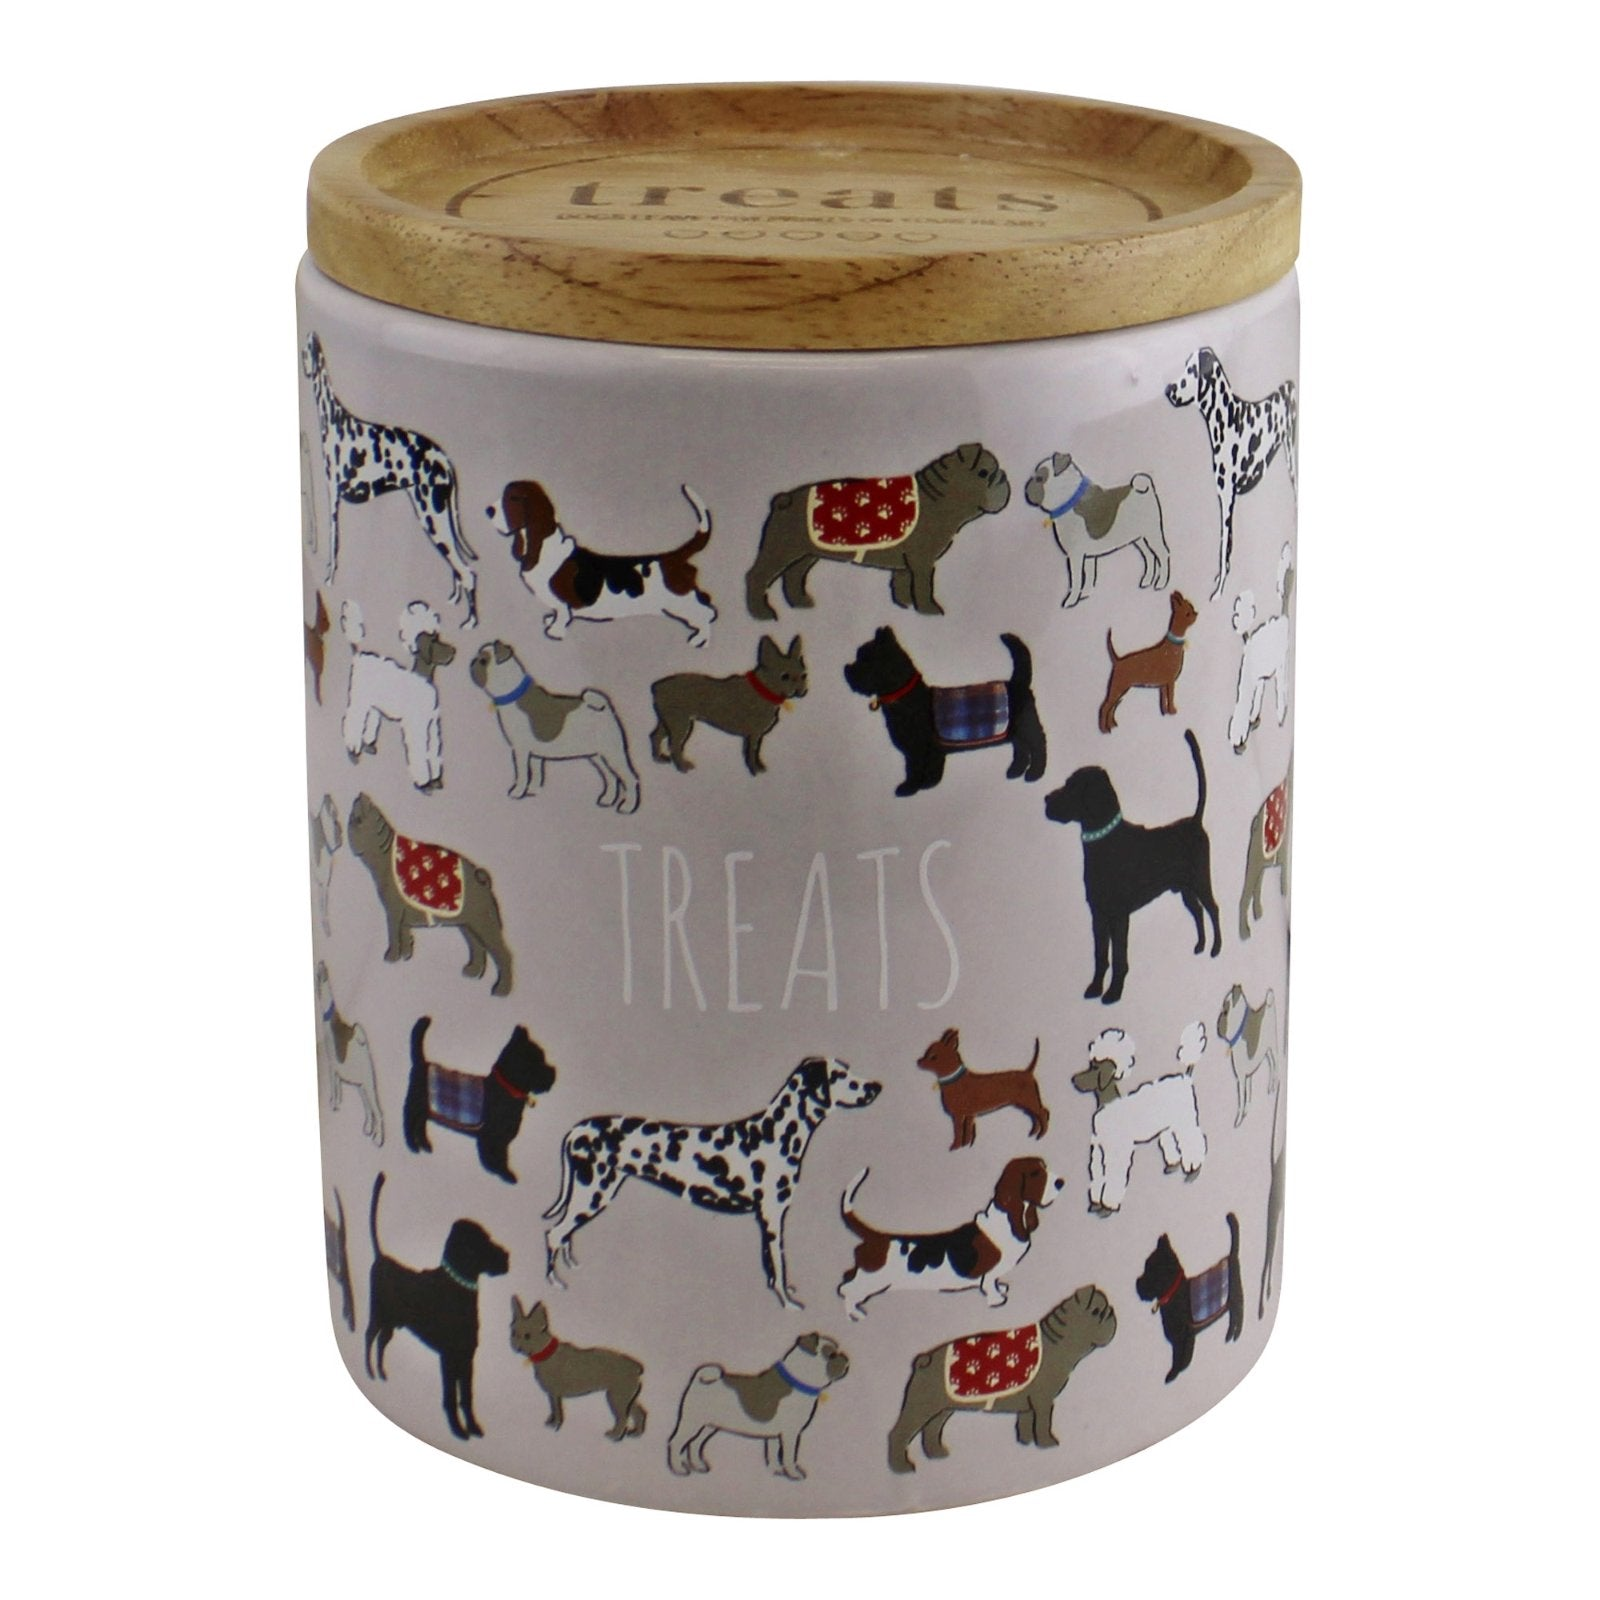 Ceramic Dog Treat Jar With Lid, Pet Food Containers by Low Cost Gifts